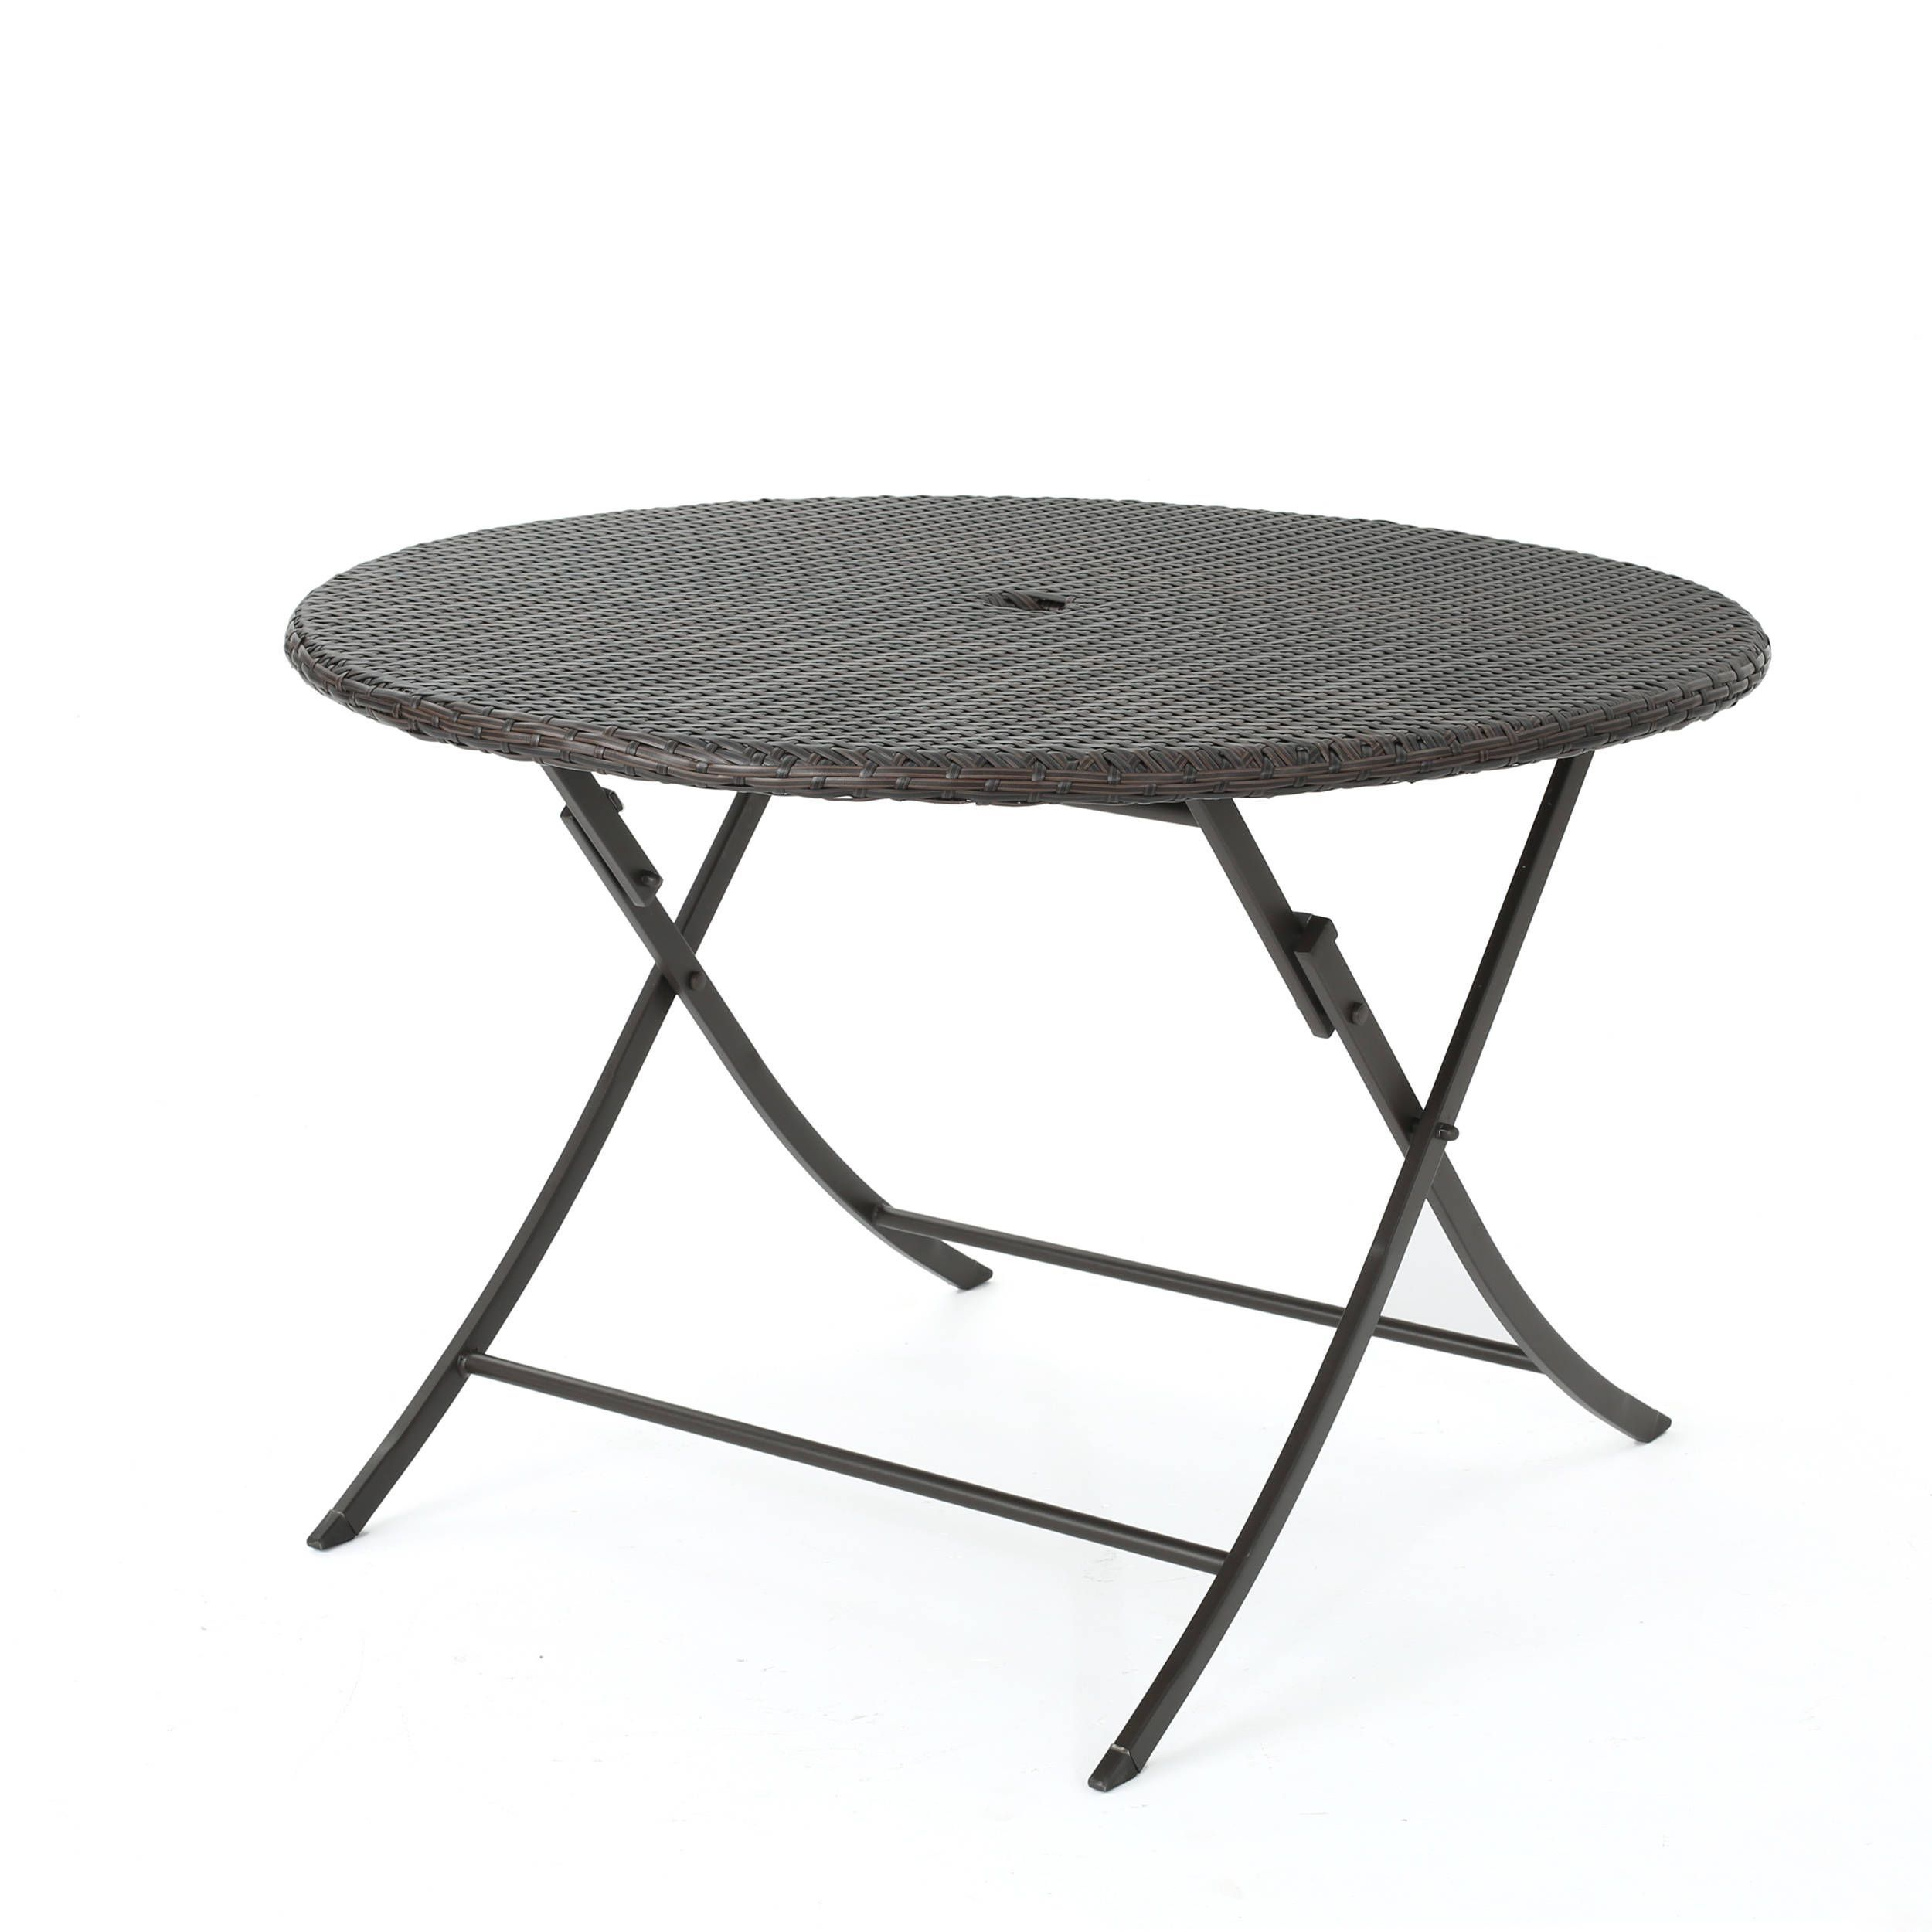 Riad Outdoor Wicker Round Foldable Dining Table with Unbrella ...